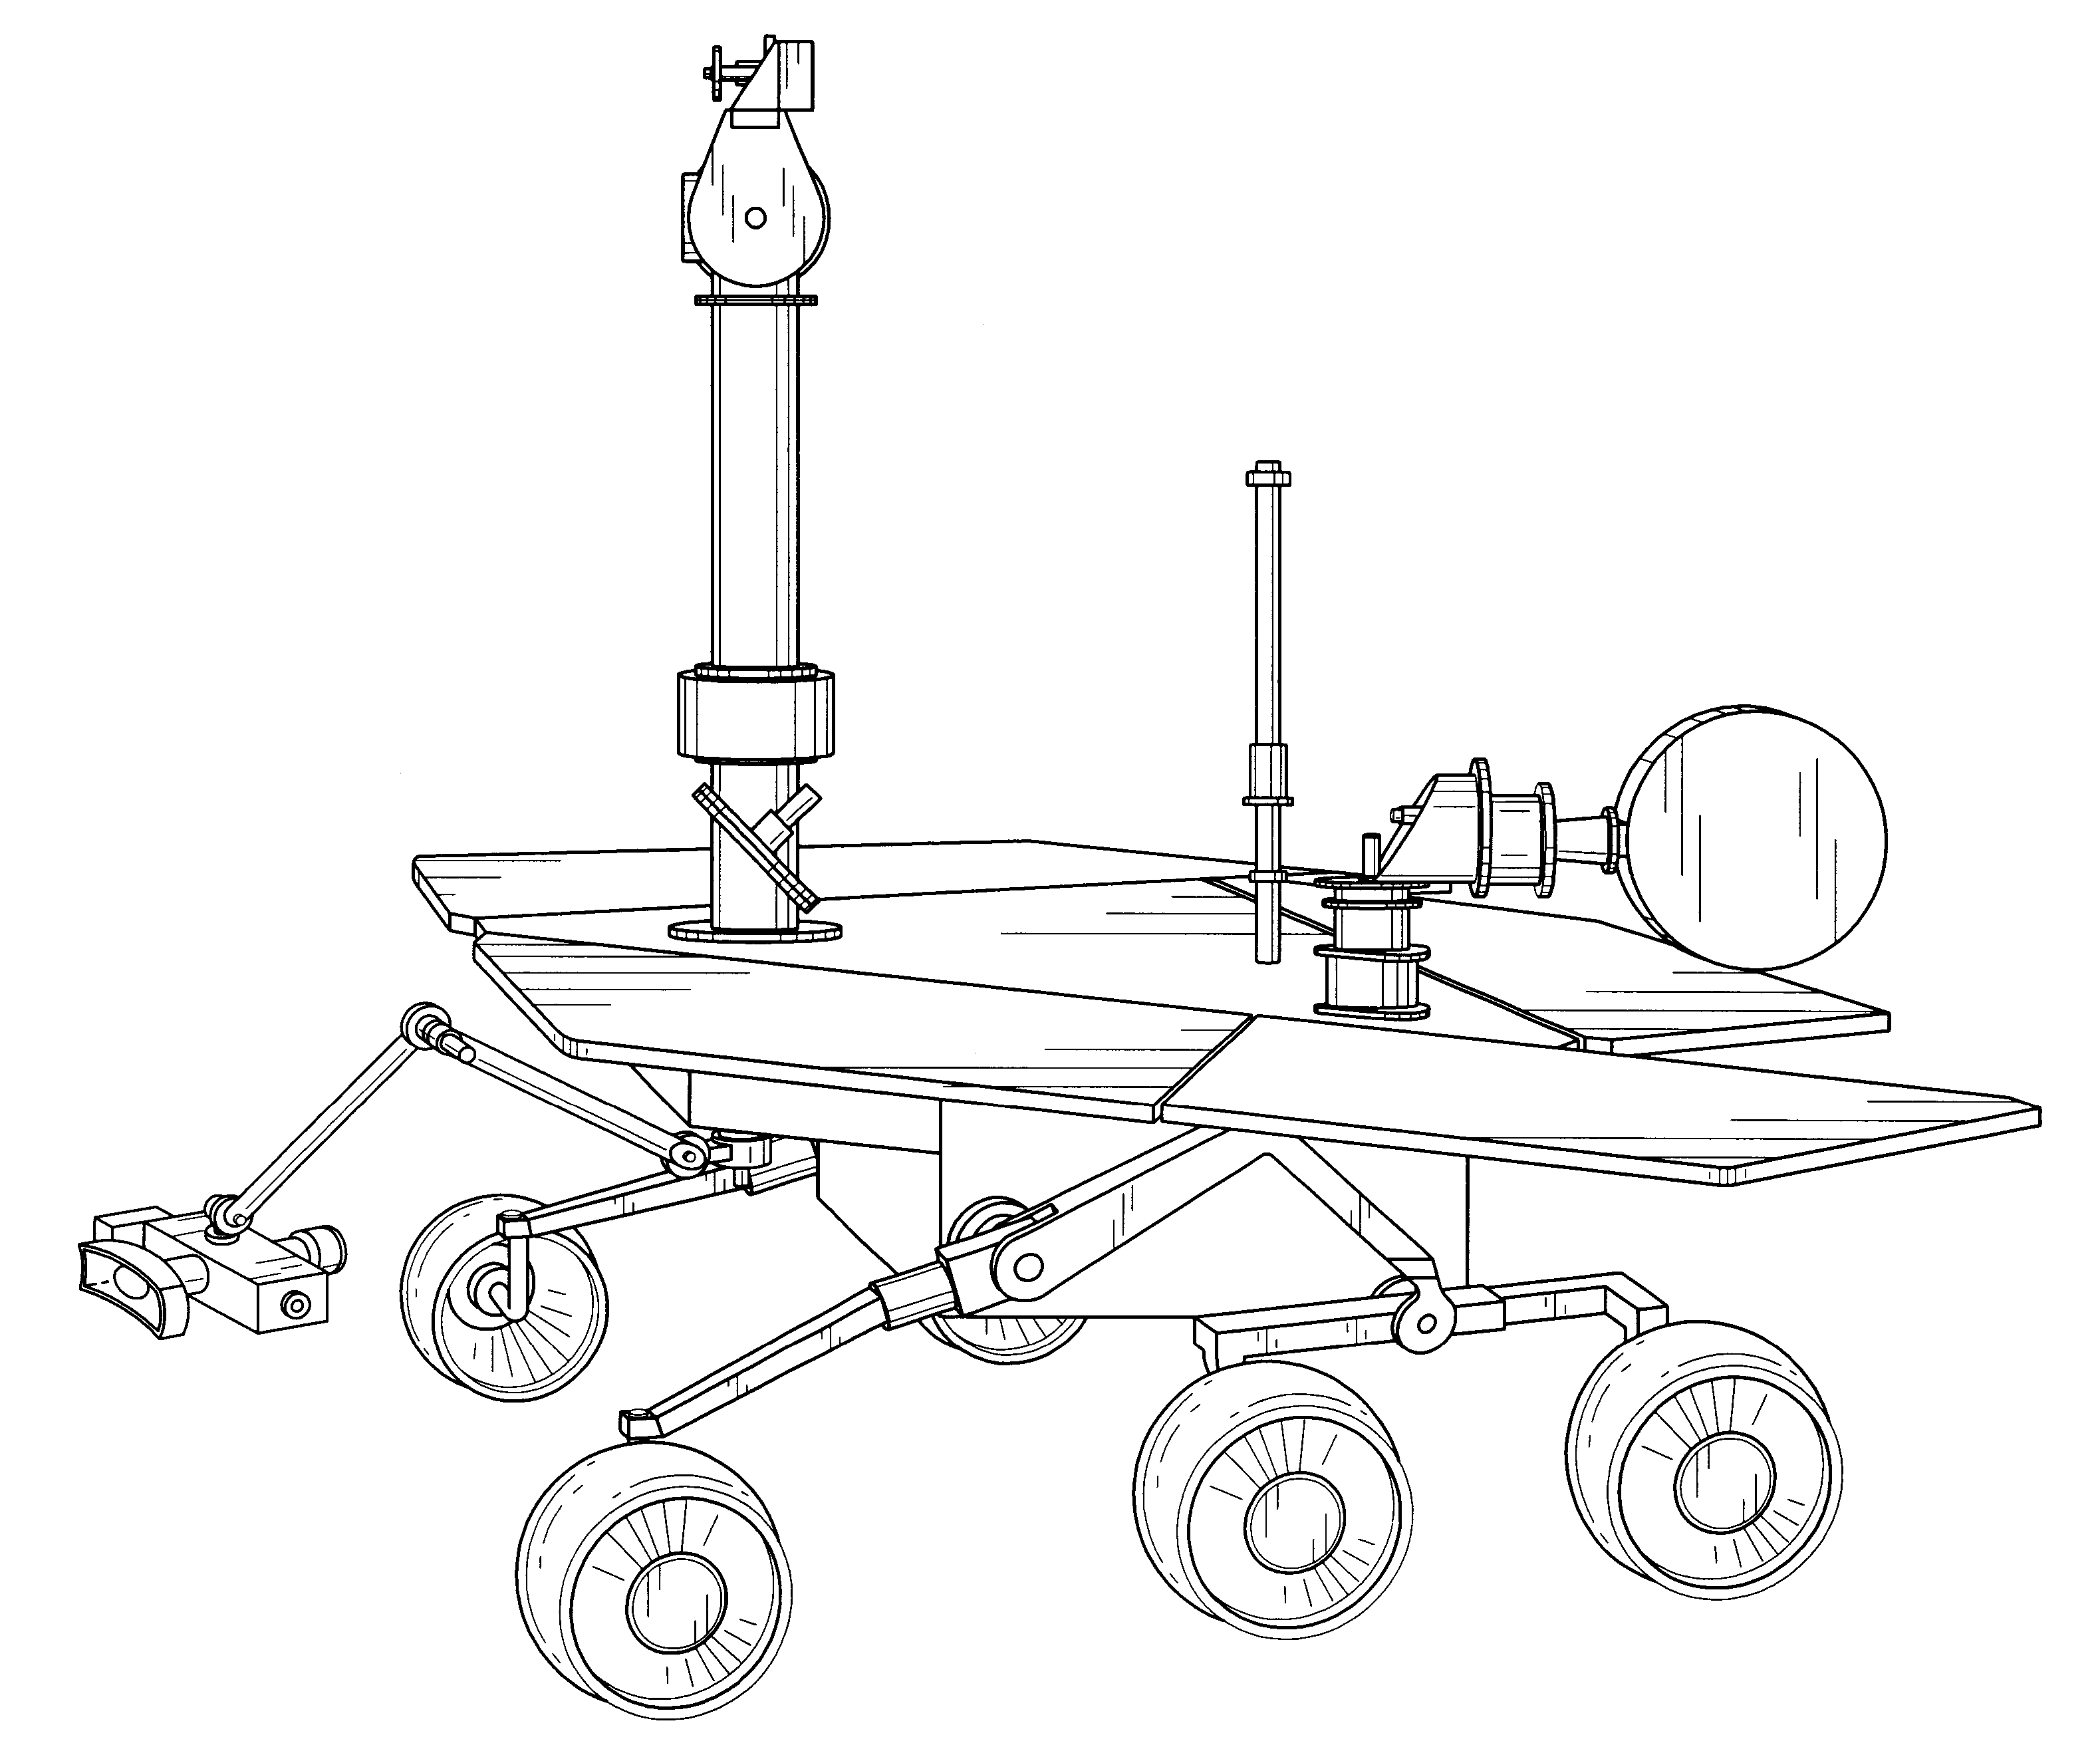 Mars Rover Curiosity Simple Drawing - Pics about space